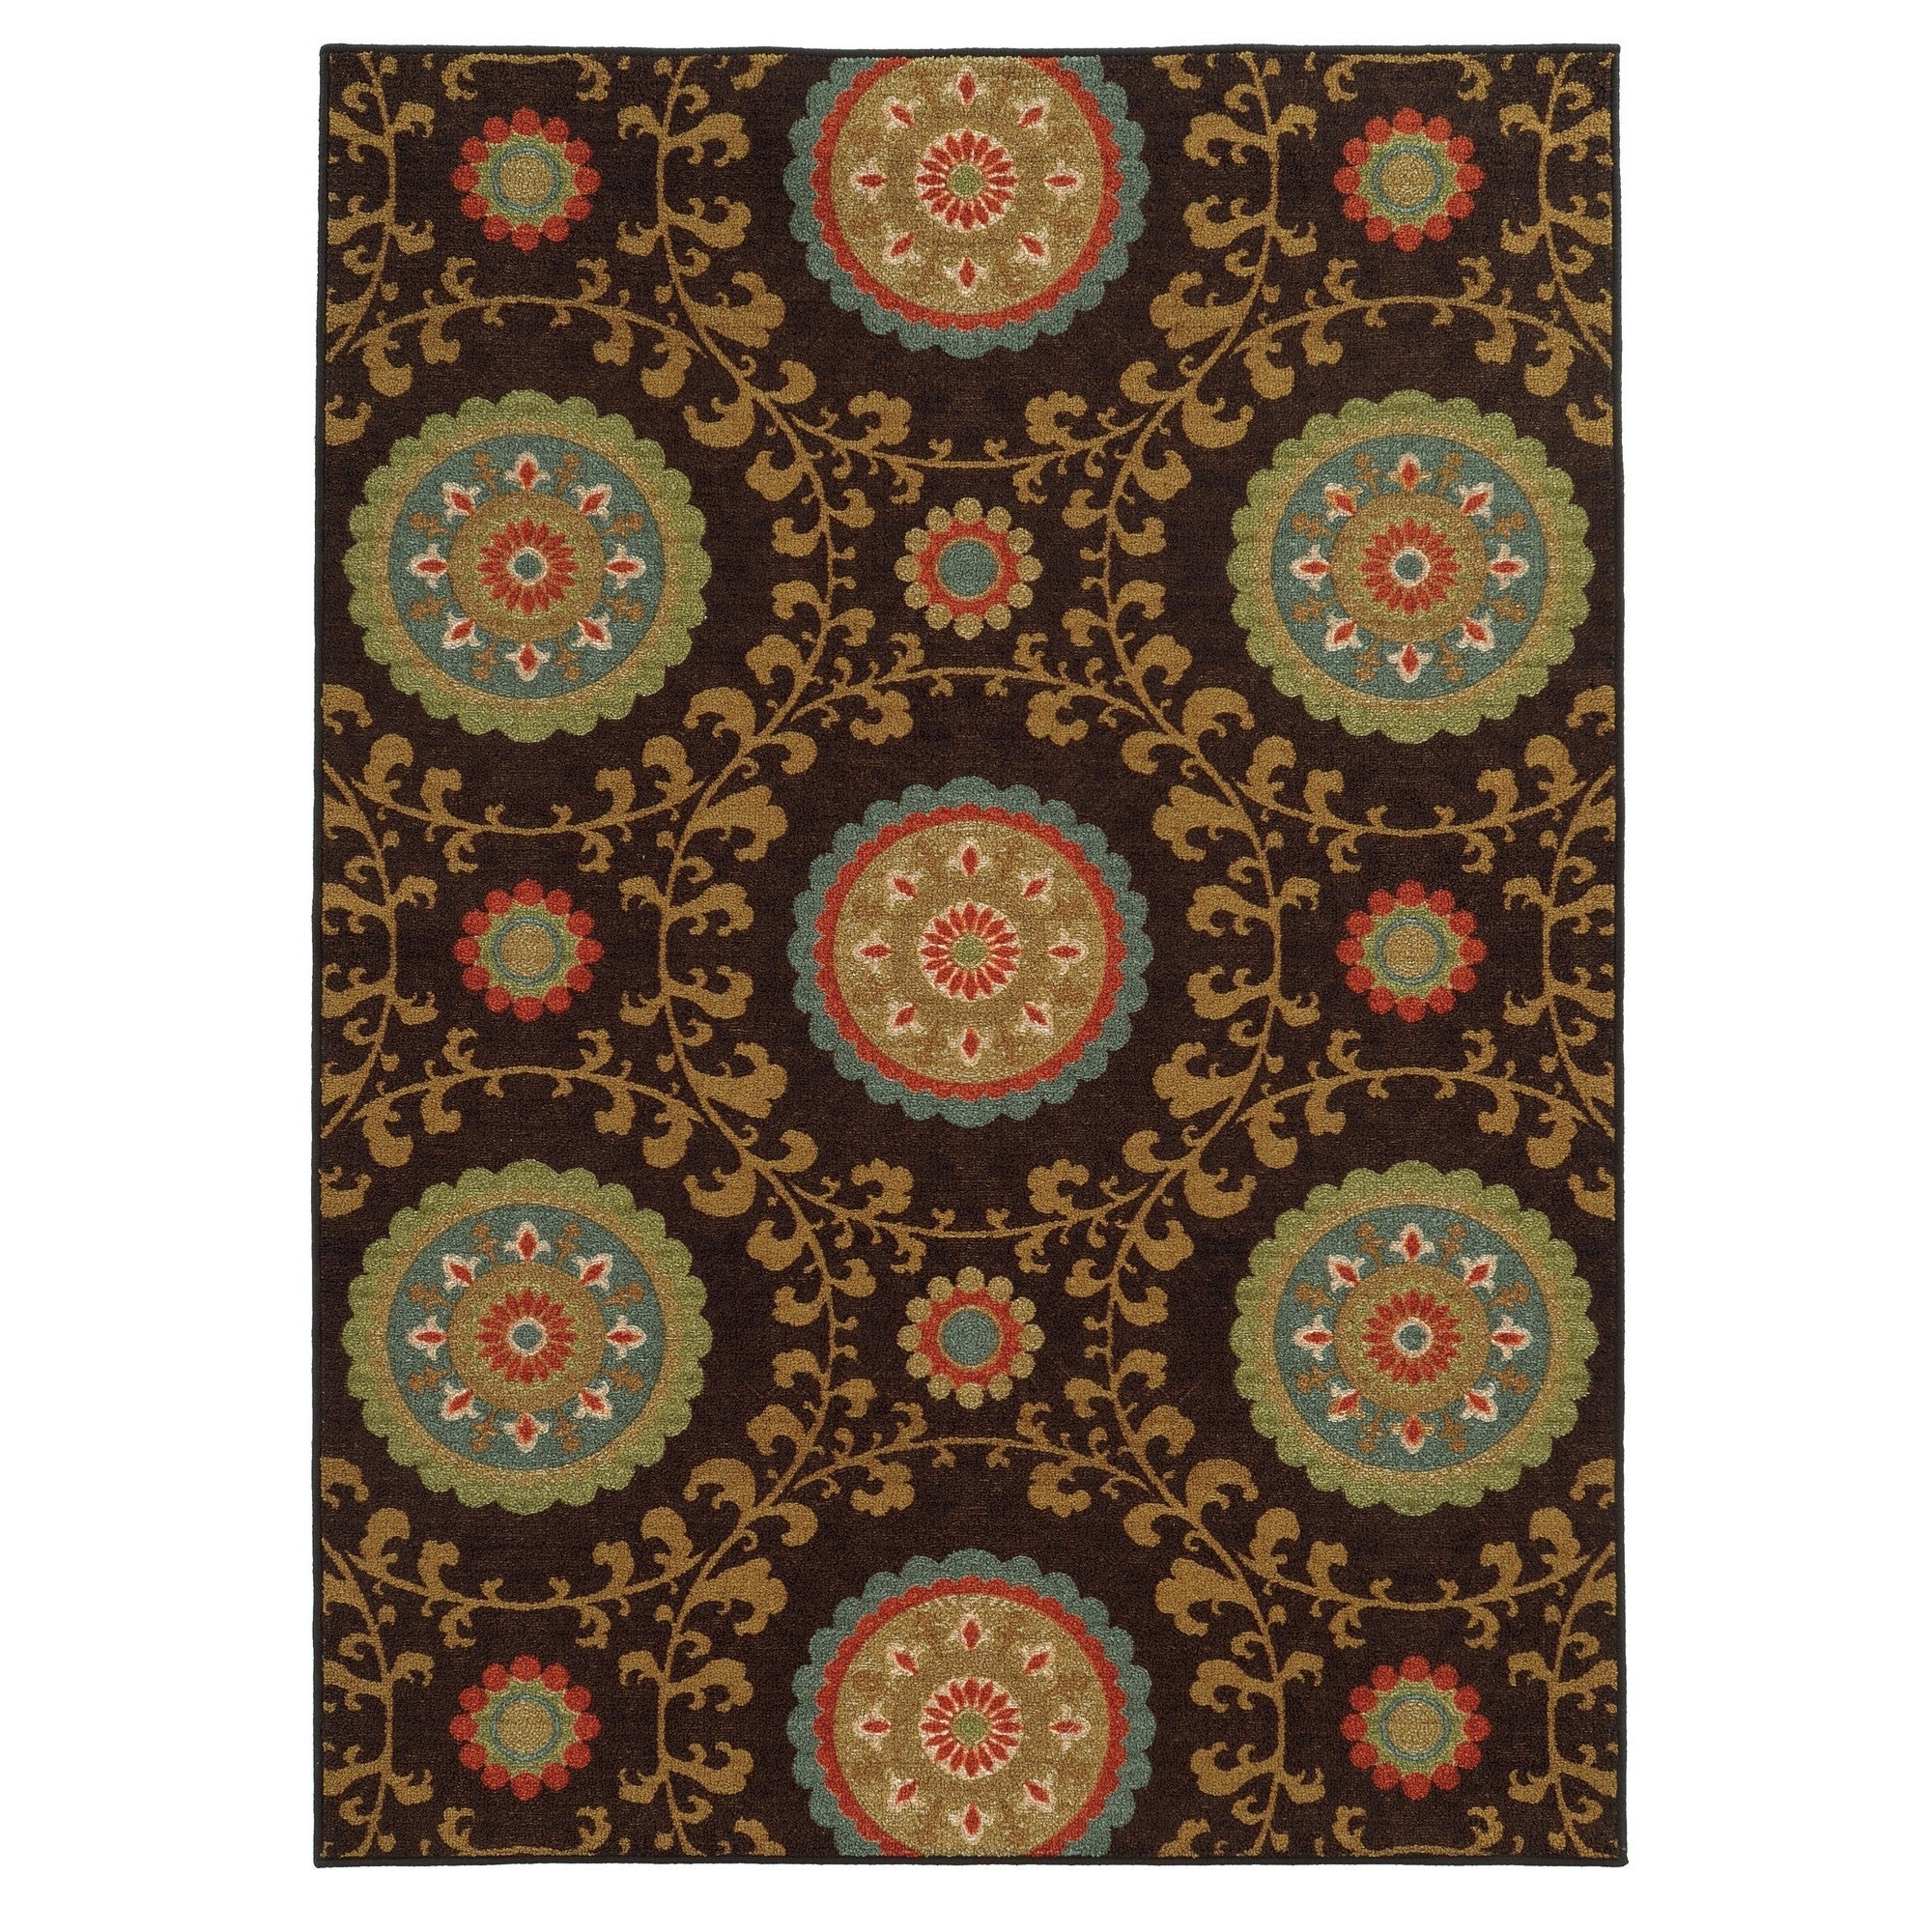 Style Haven Loop Pile Over Scale Floral Brown/ Multi Nylon Rug (7'10 x 10') at Sears.com